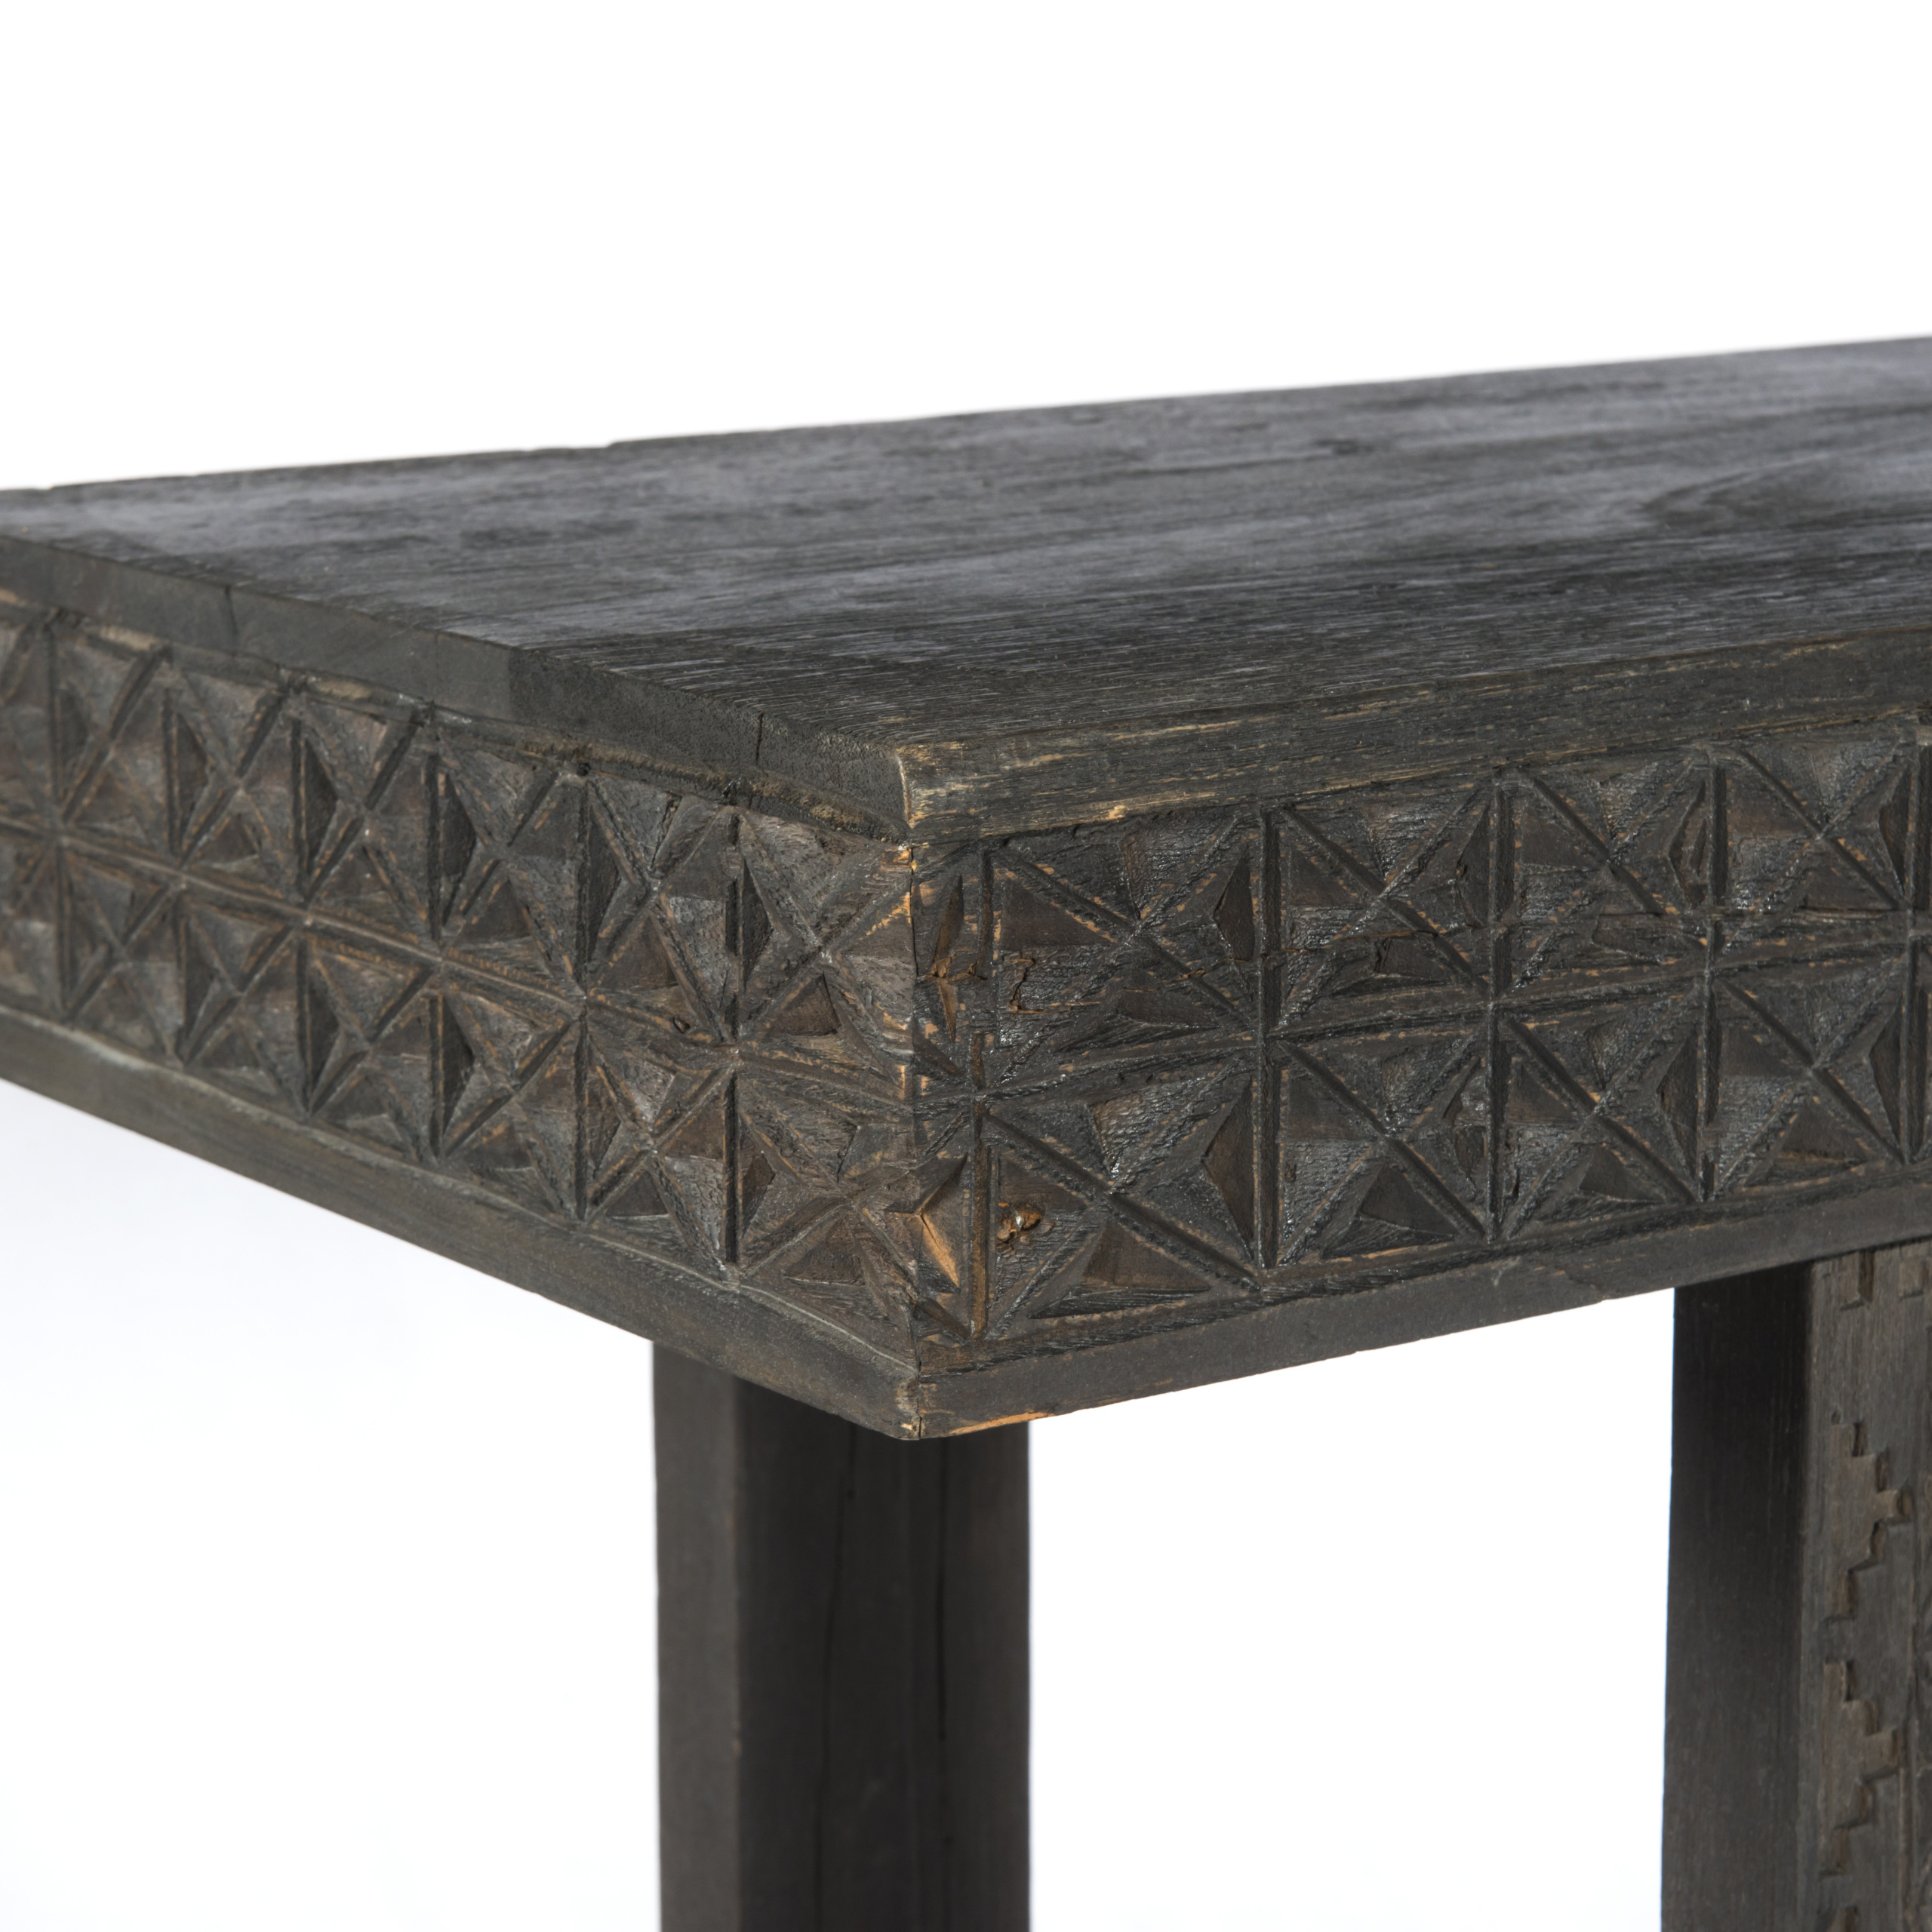 Balboa Carved Console Regarding Balboa Carved Console Tables (View 3 of 20)